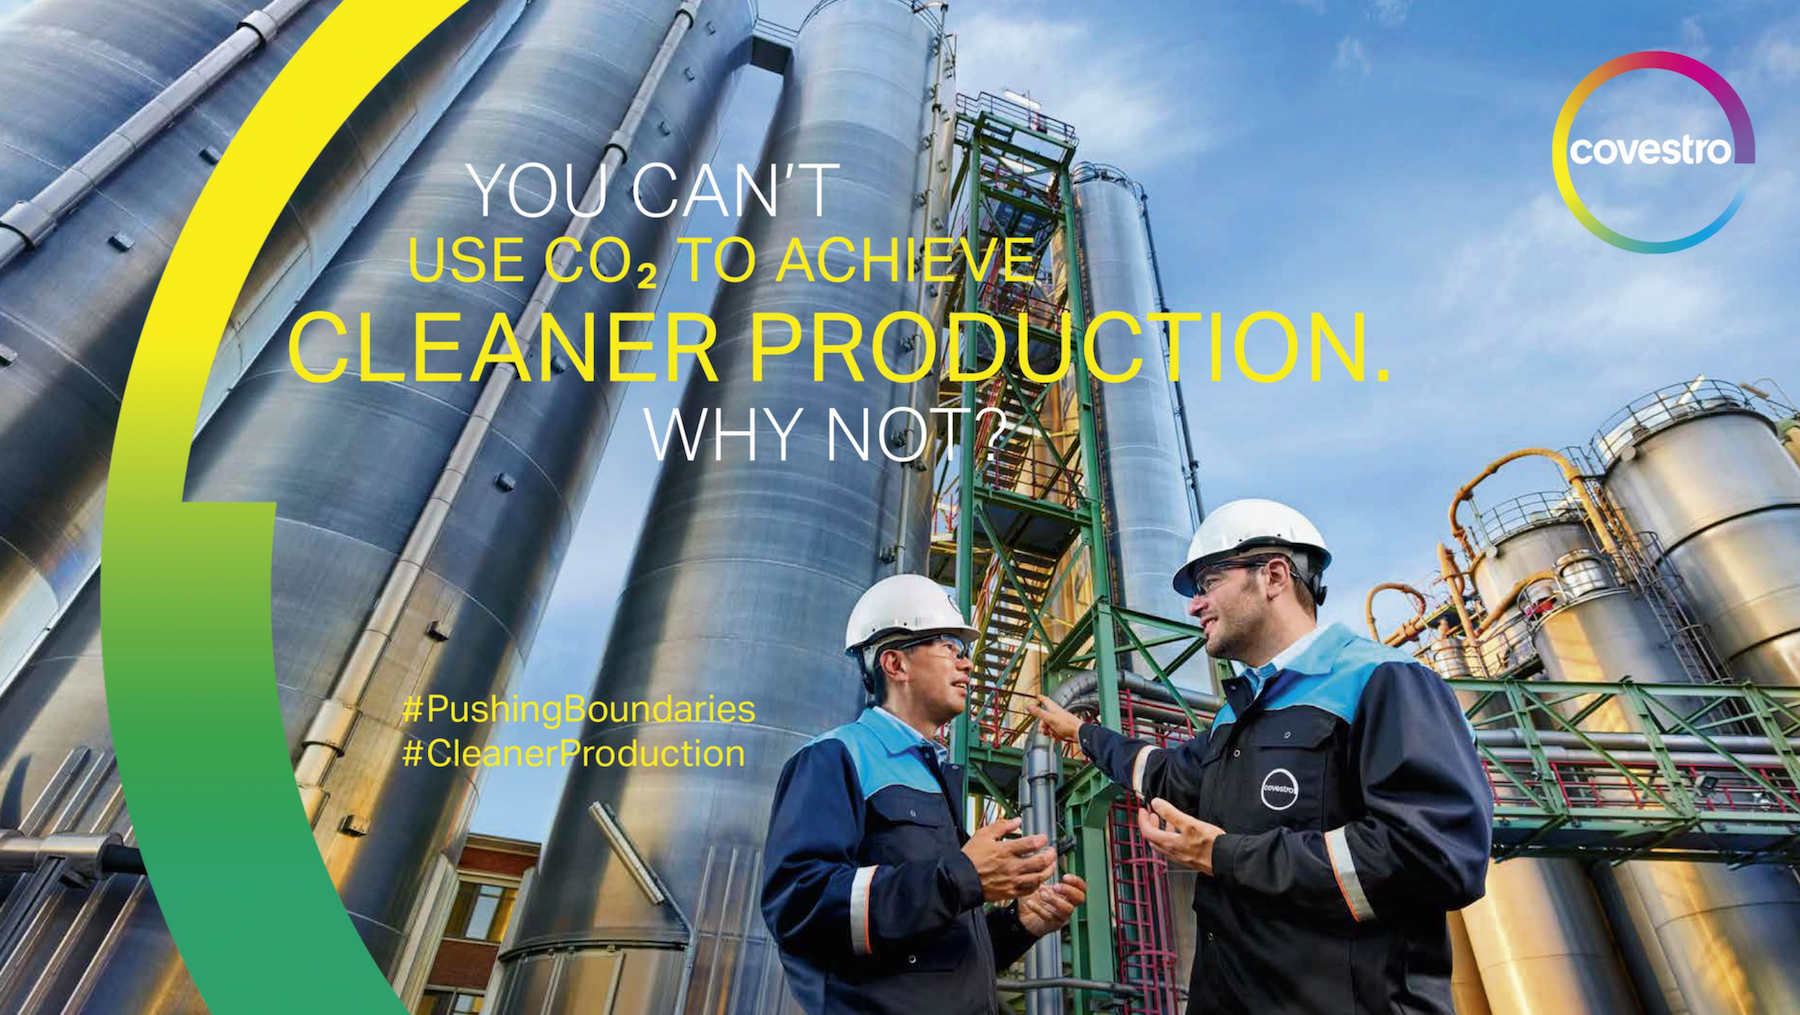 Covestro - Cleaner production